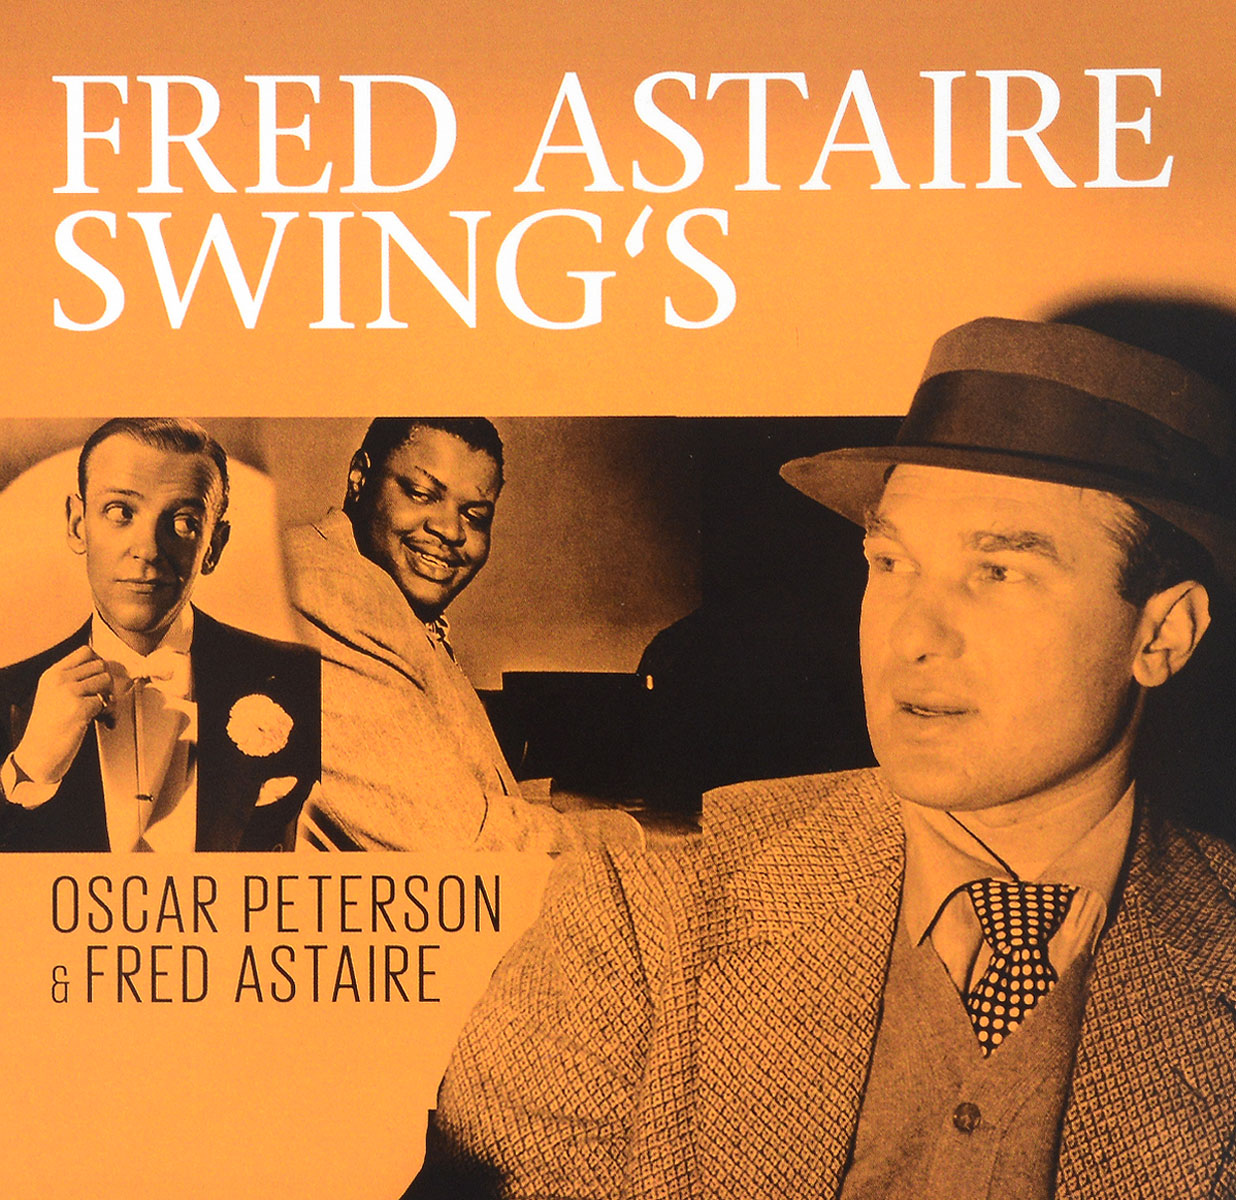 Оскар Питерсон,Фред Астер Oscar Peterson & Fred Astaire. Fred Astaire Swing's (2 CD) оскар питерсон oscar peterson the song books 5 cd